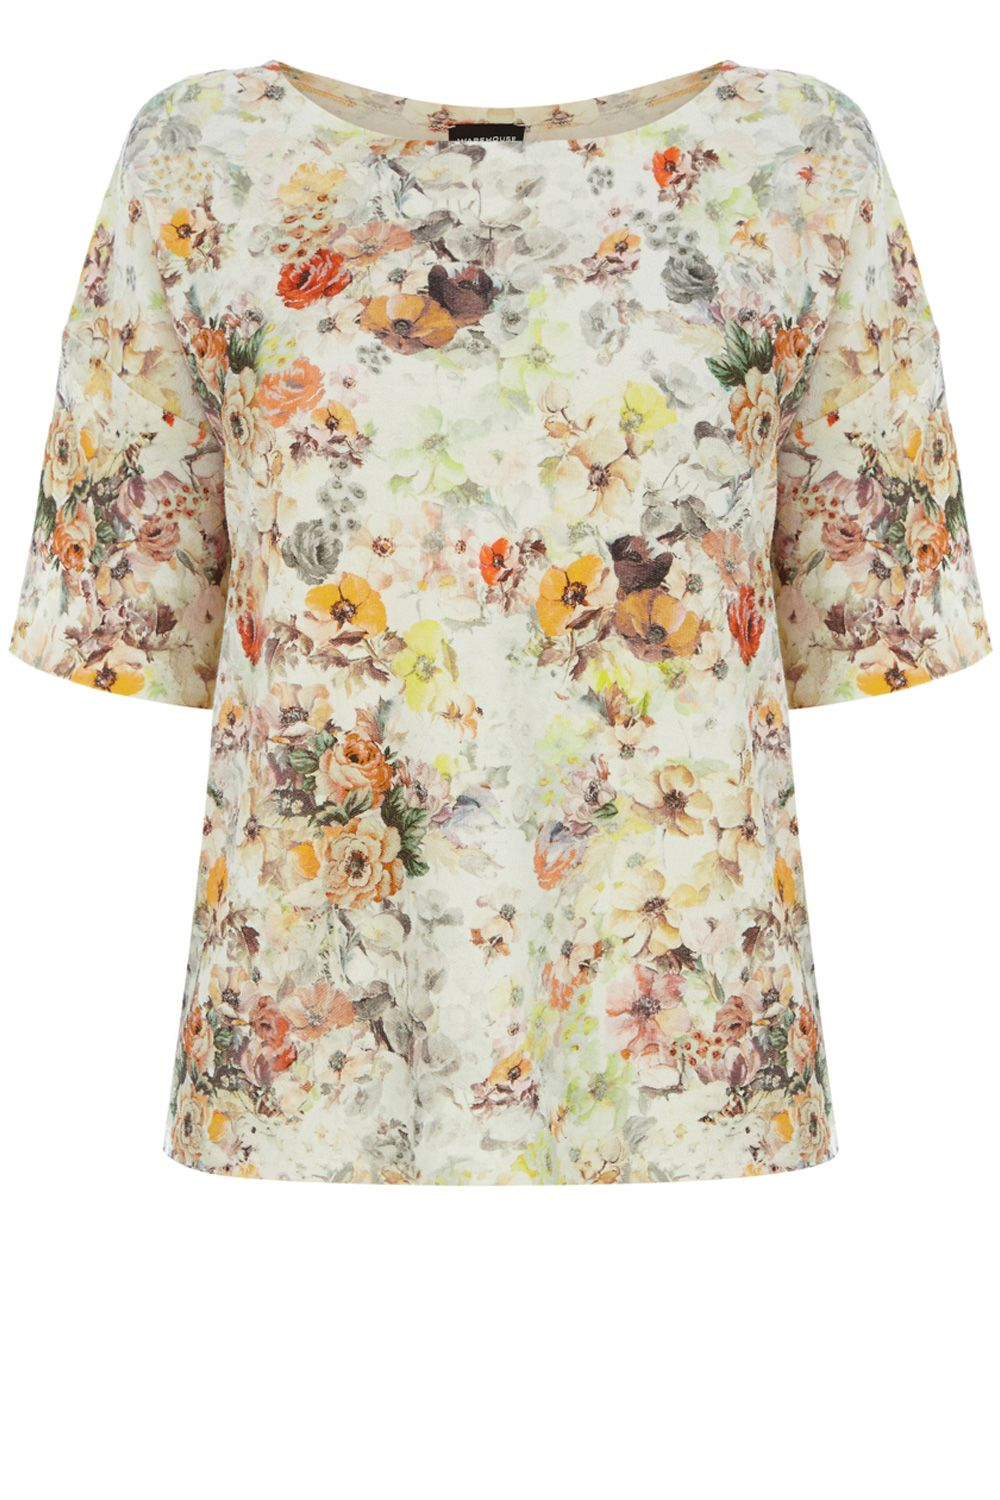 Pretty floral textured t-shirt